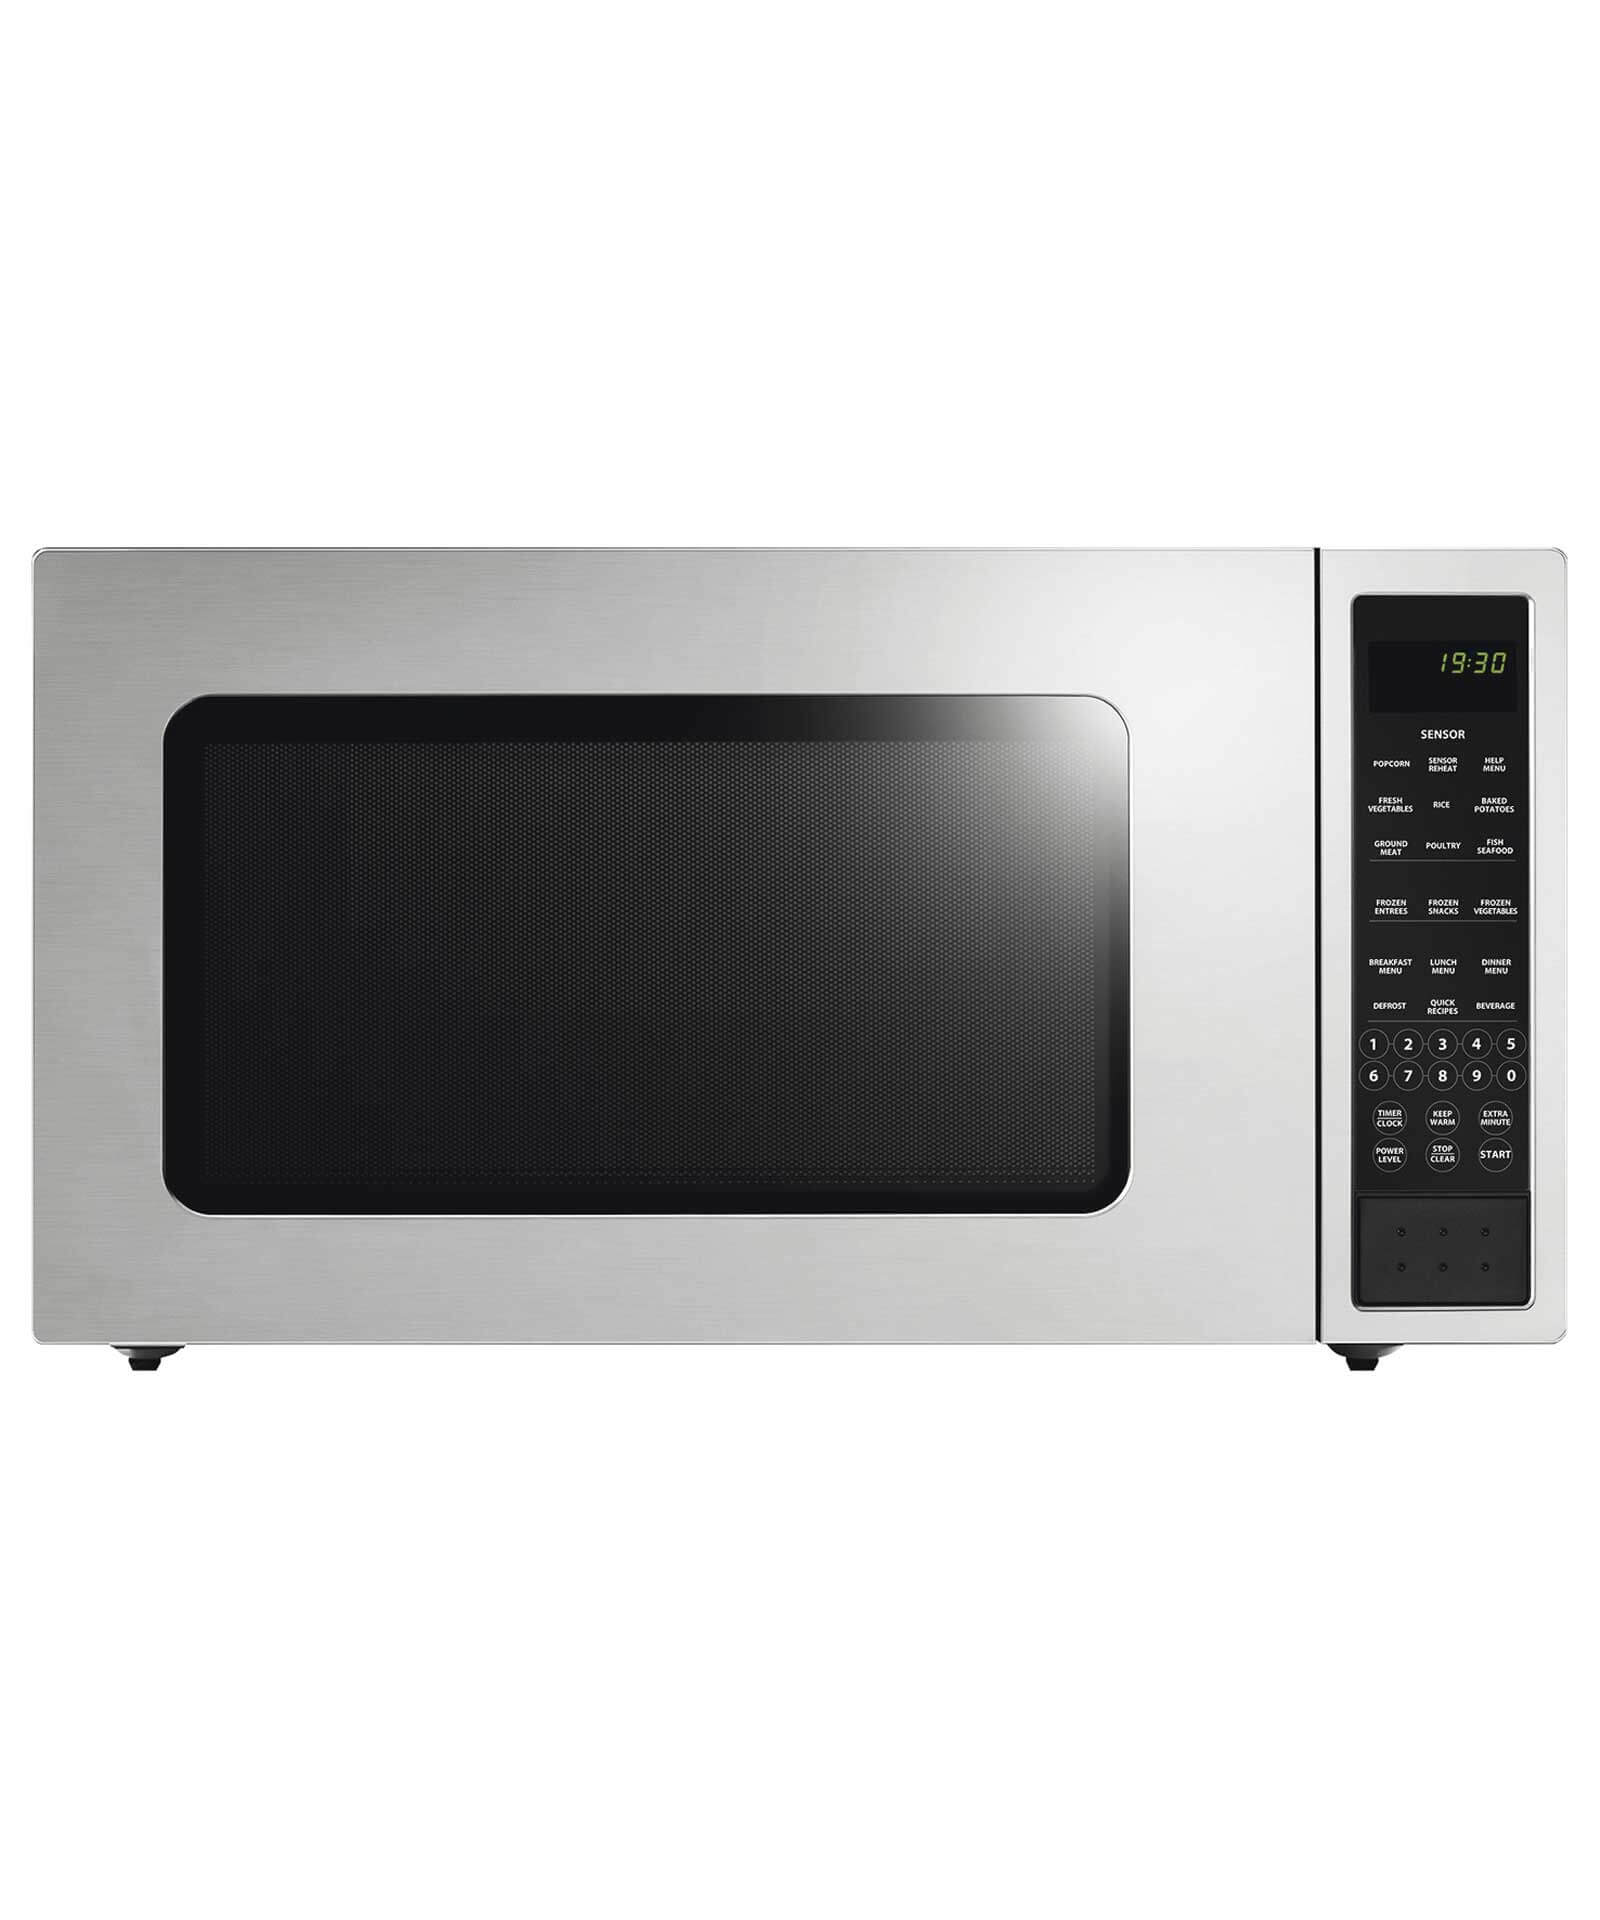 Fisher And Paykel Microwave Bestmicrowave